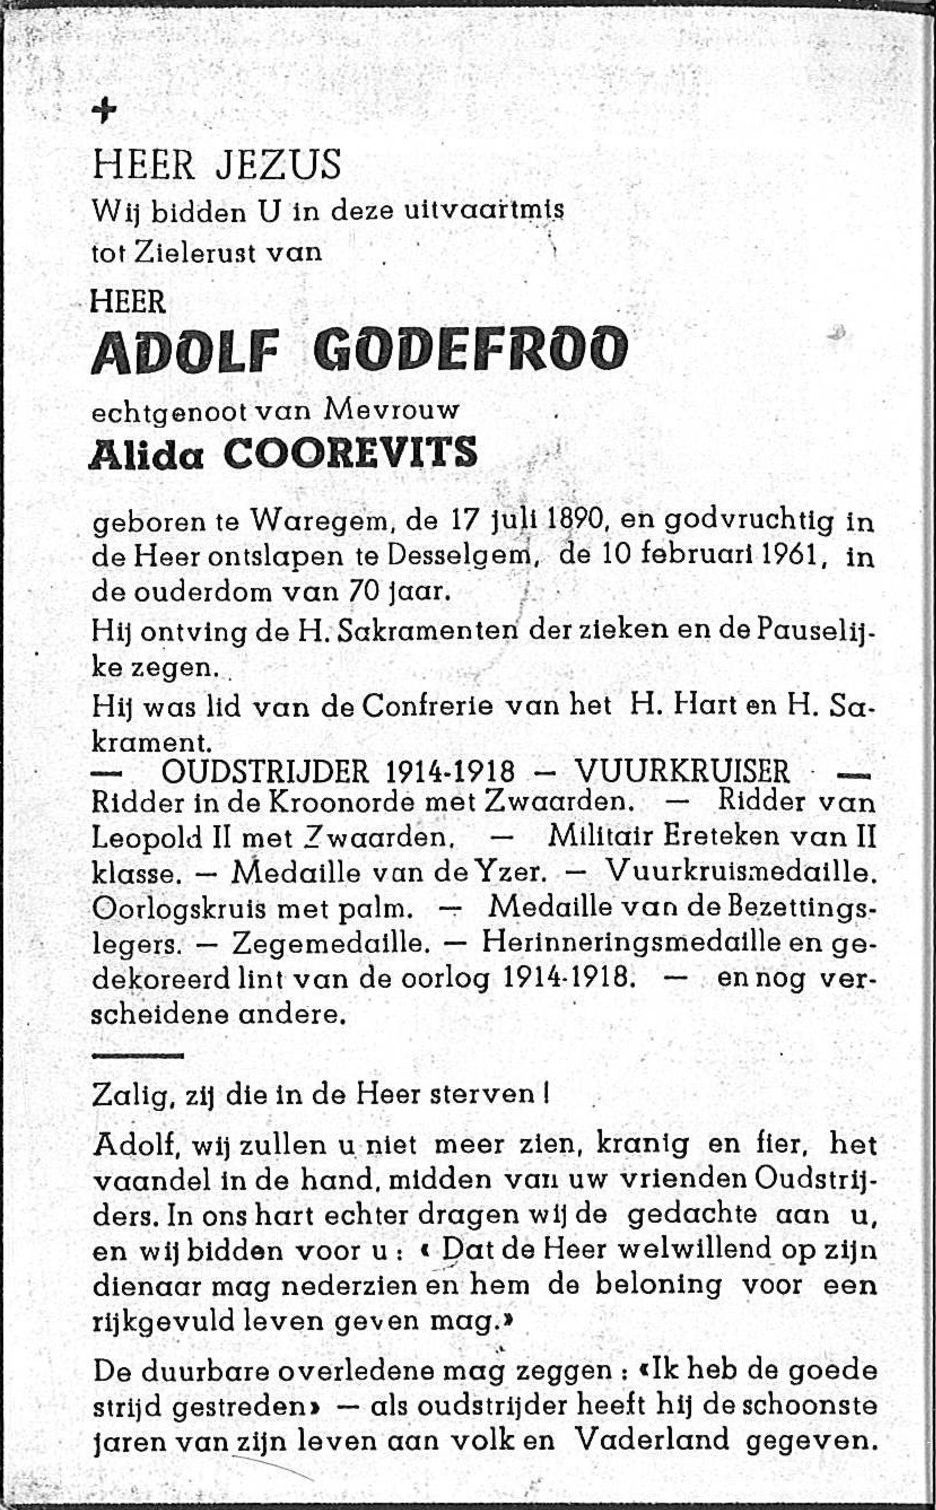 Adolf Godefroo